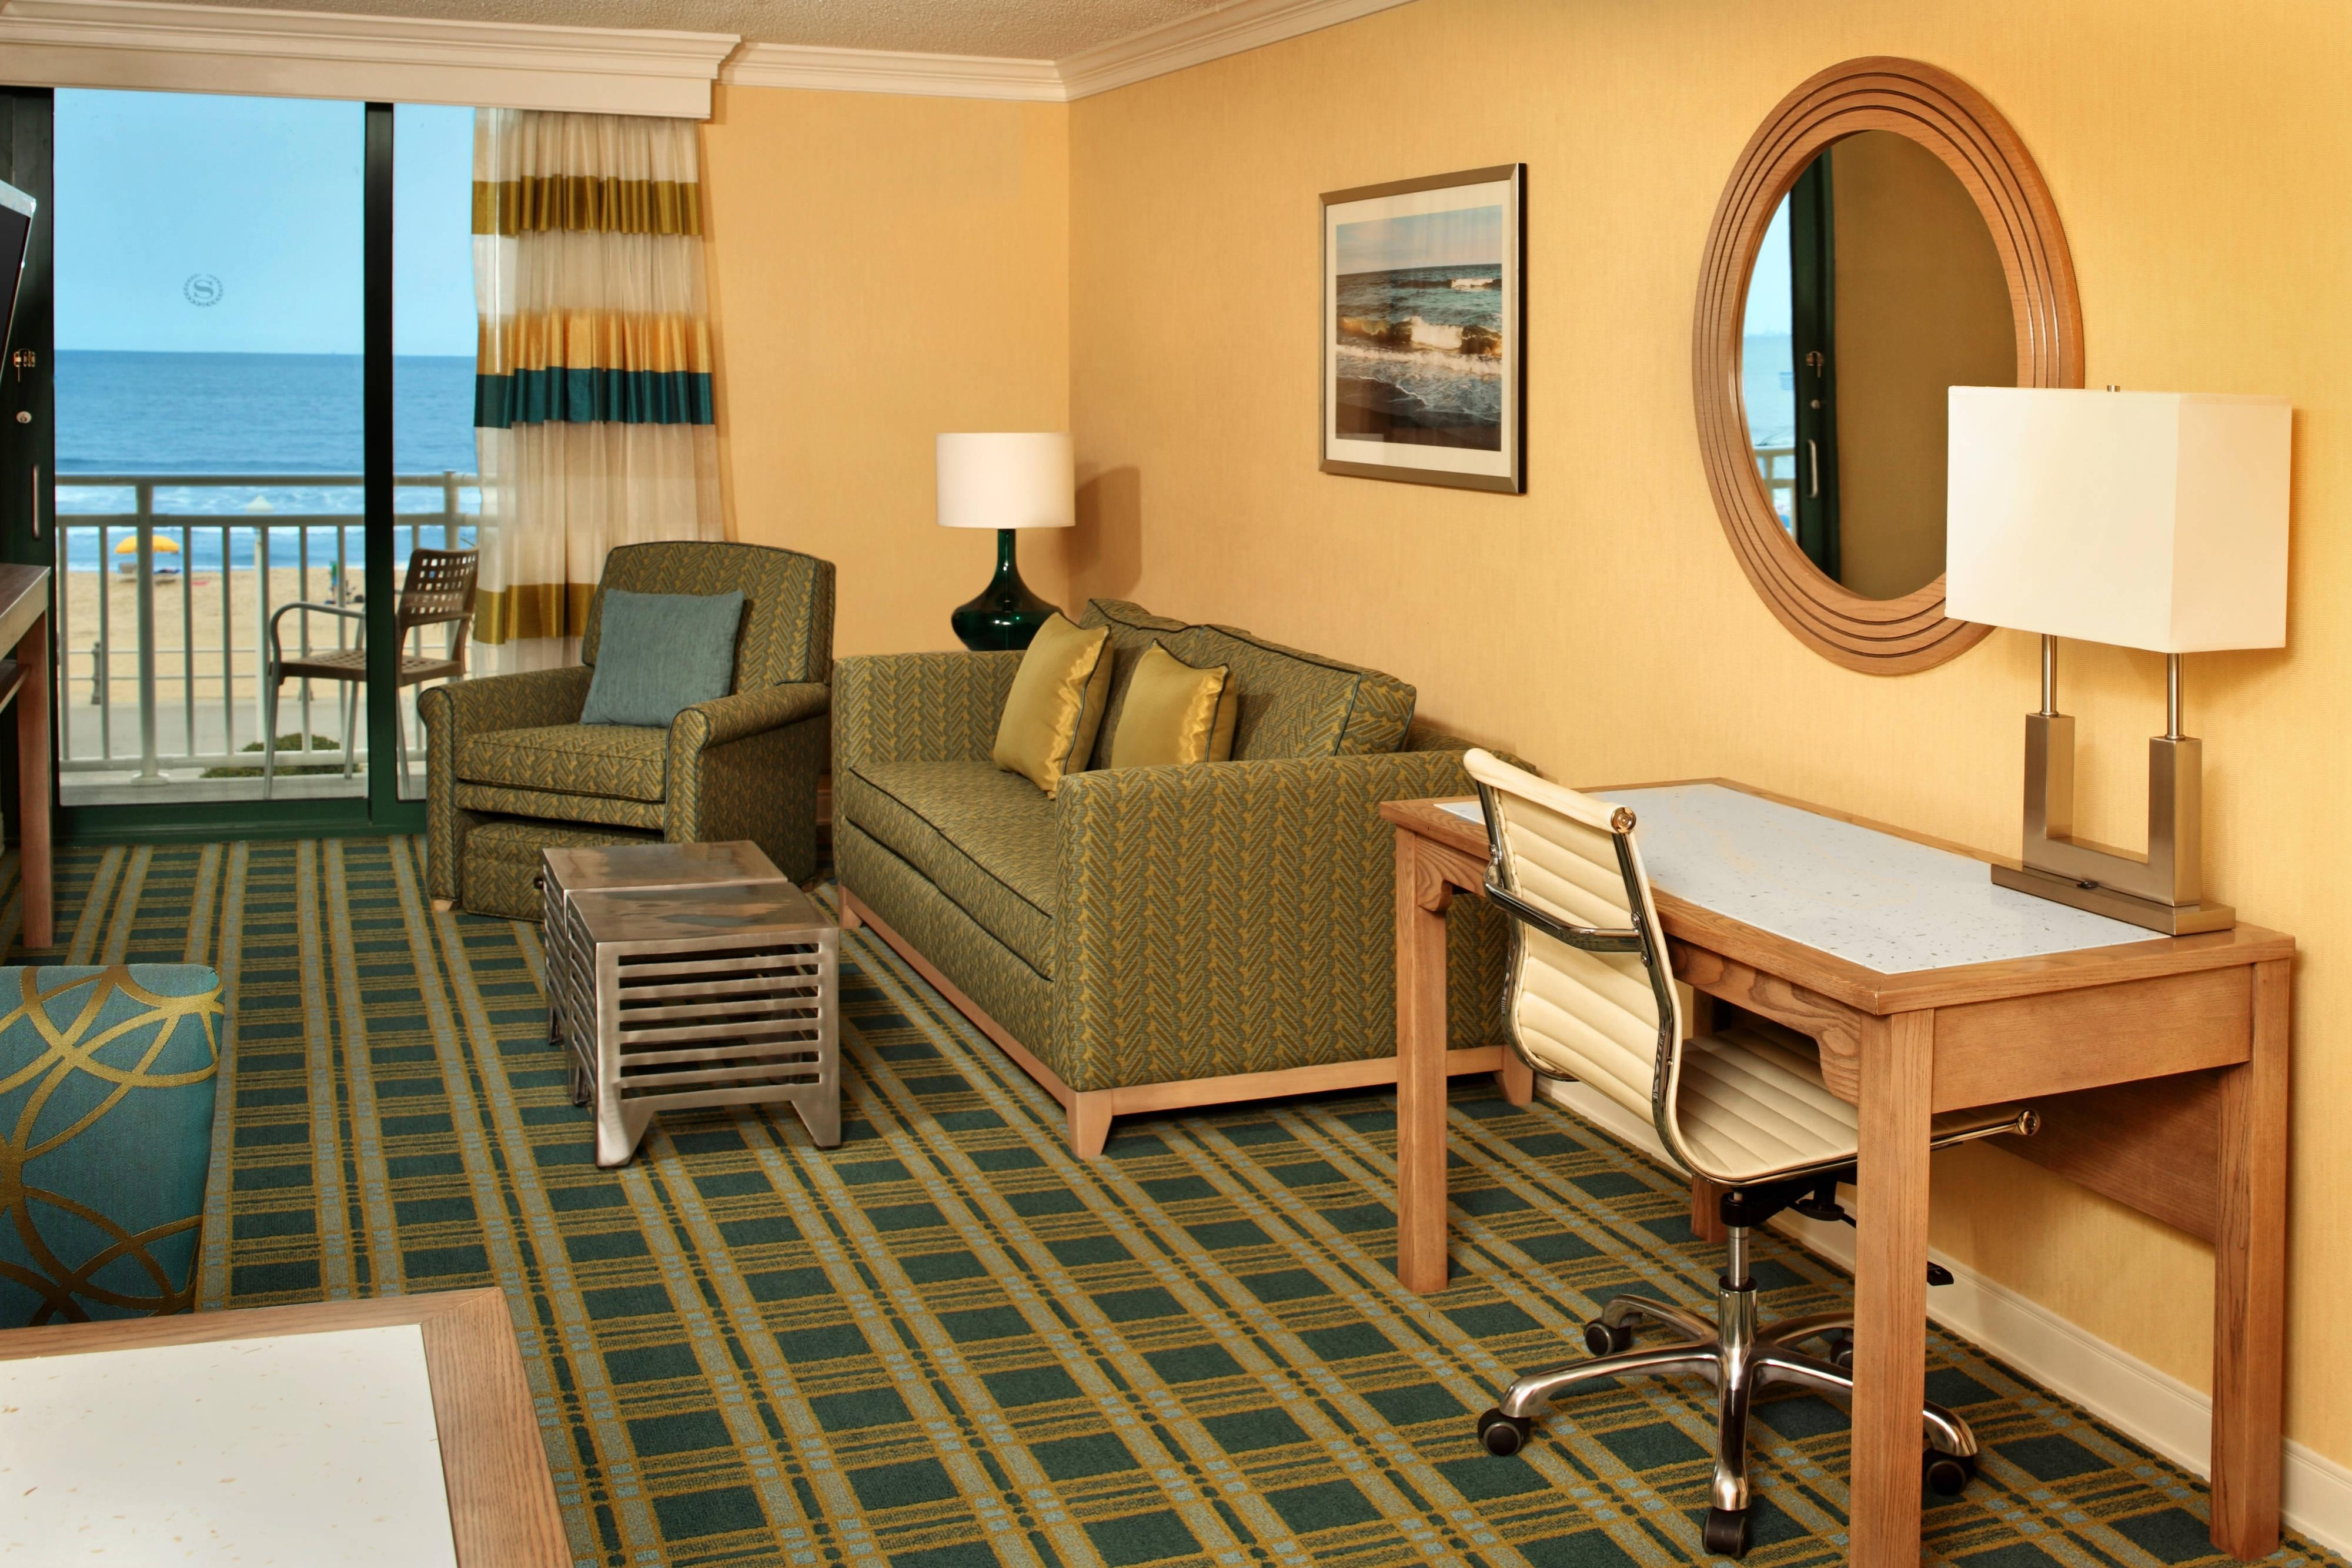 Suites with ocean views sheraton virginia beach - 2 bedroom hotels in virginia beach ...